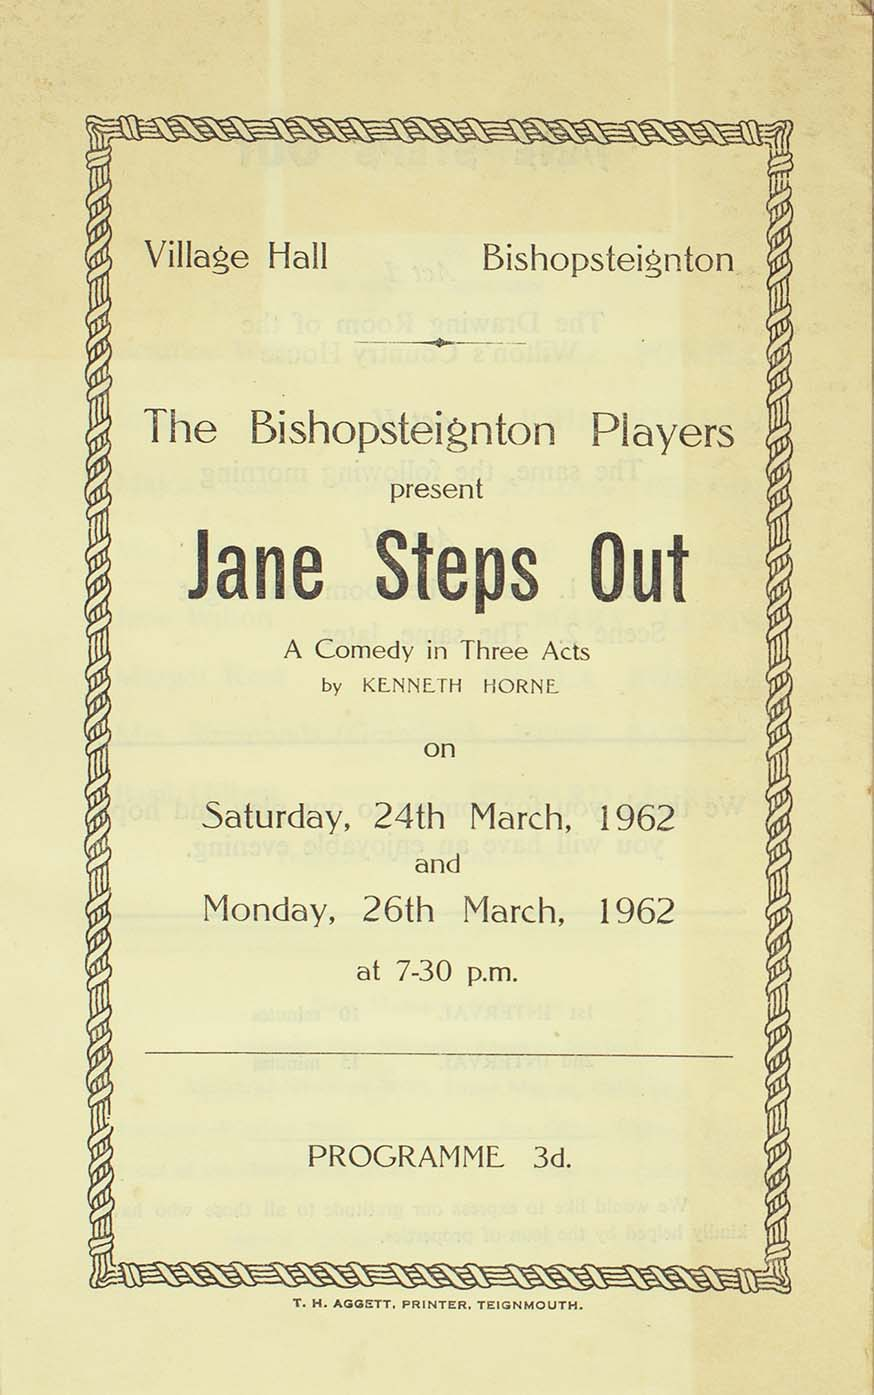 Leaflet to advertise the programme for the play 'Jane Steps Out' presented by the Bishopsteignton Players front